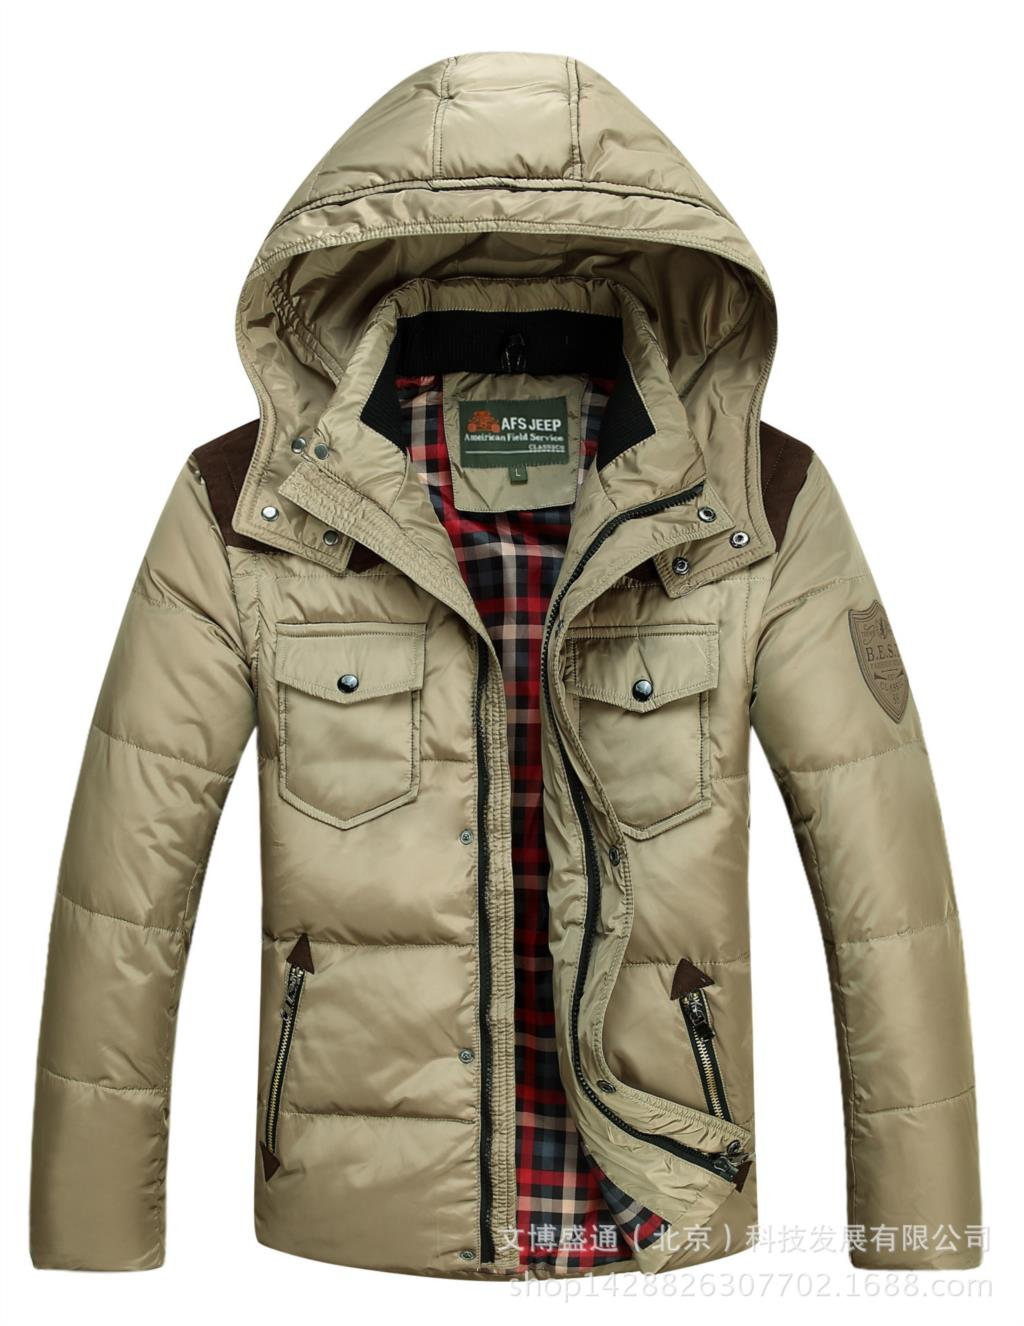 58c1880606c 2015 New Mens Winter Down Jacket Fashion Hooded Winter Jackets For